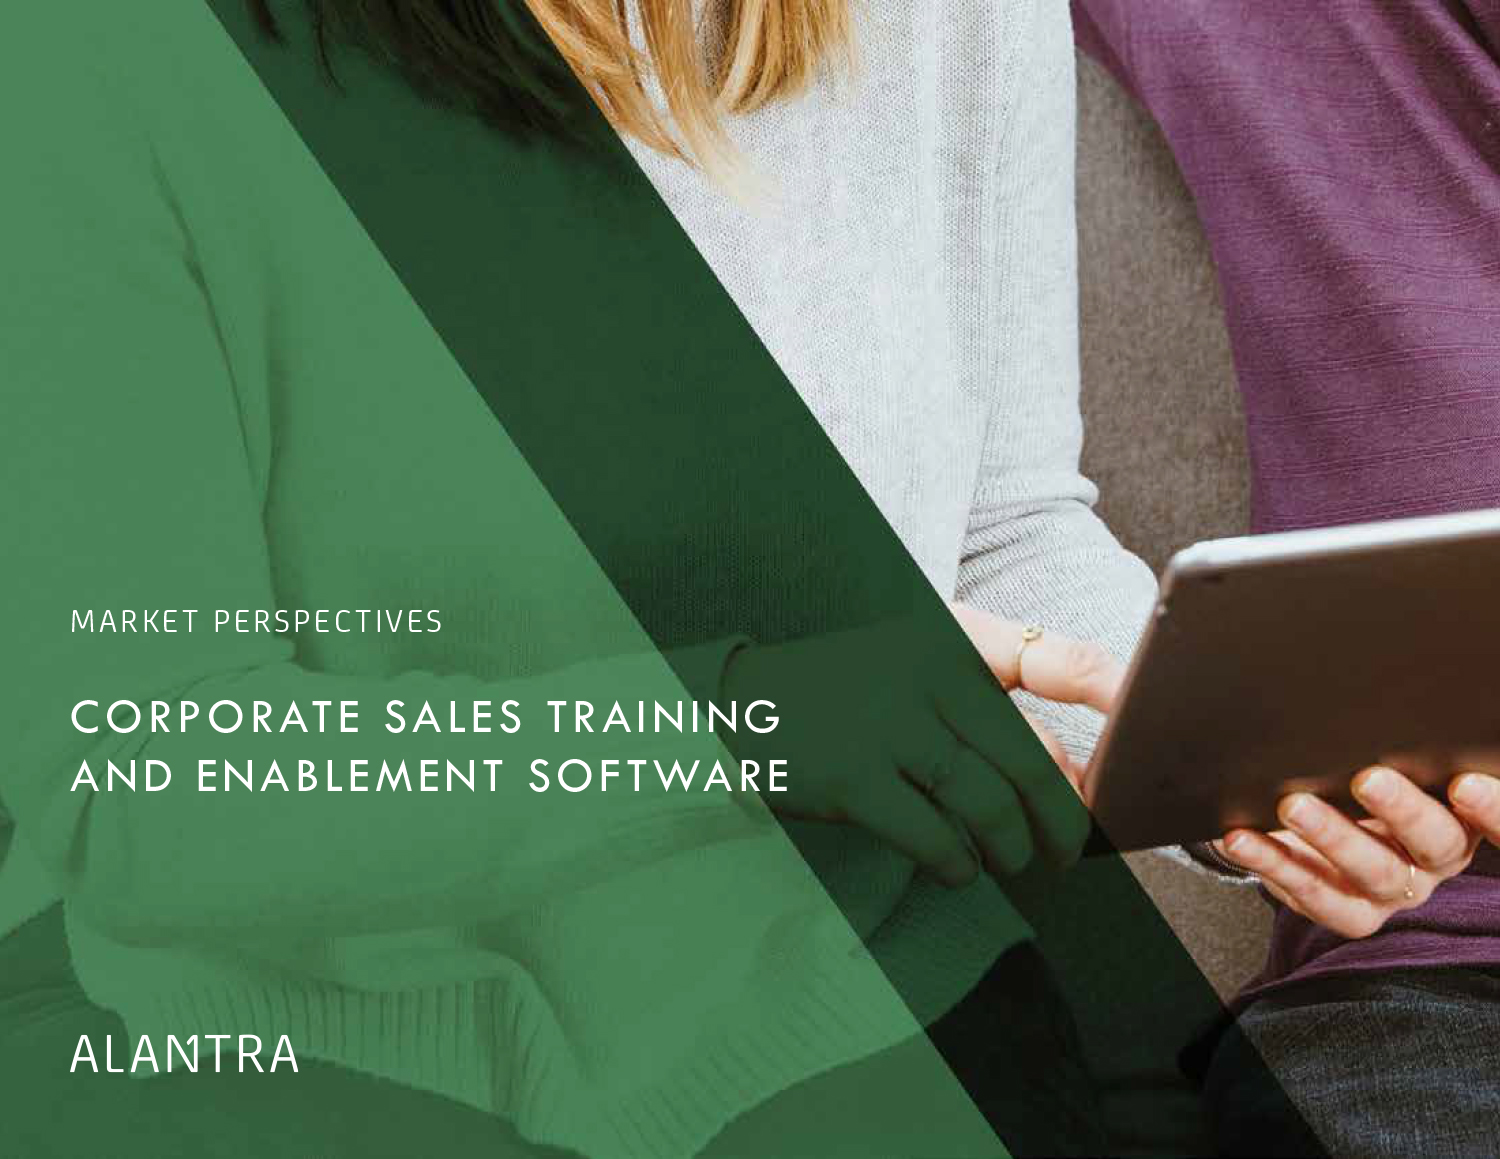 Corporate Sales Training Enablement software - Corporate training solutions have evolved from an extensions of human capital and talent management to ROI based training that is contextual. Sales training has substantial effect on top line revenue and customer success for large enterprises, prevent that well trained reps vastly outperform. Substantial corporate budgets available for solutions beyond ineffective static content libraries.